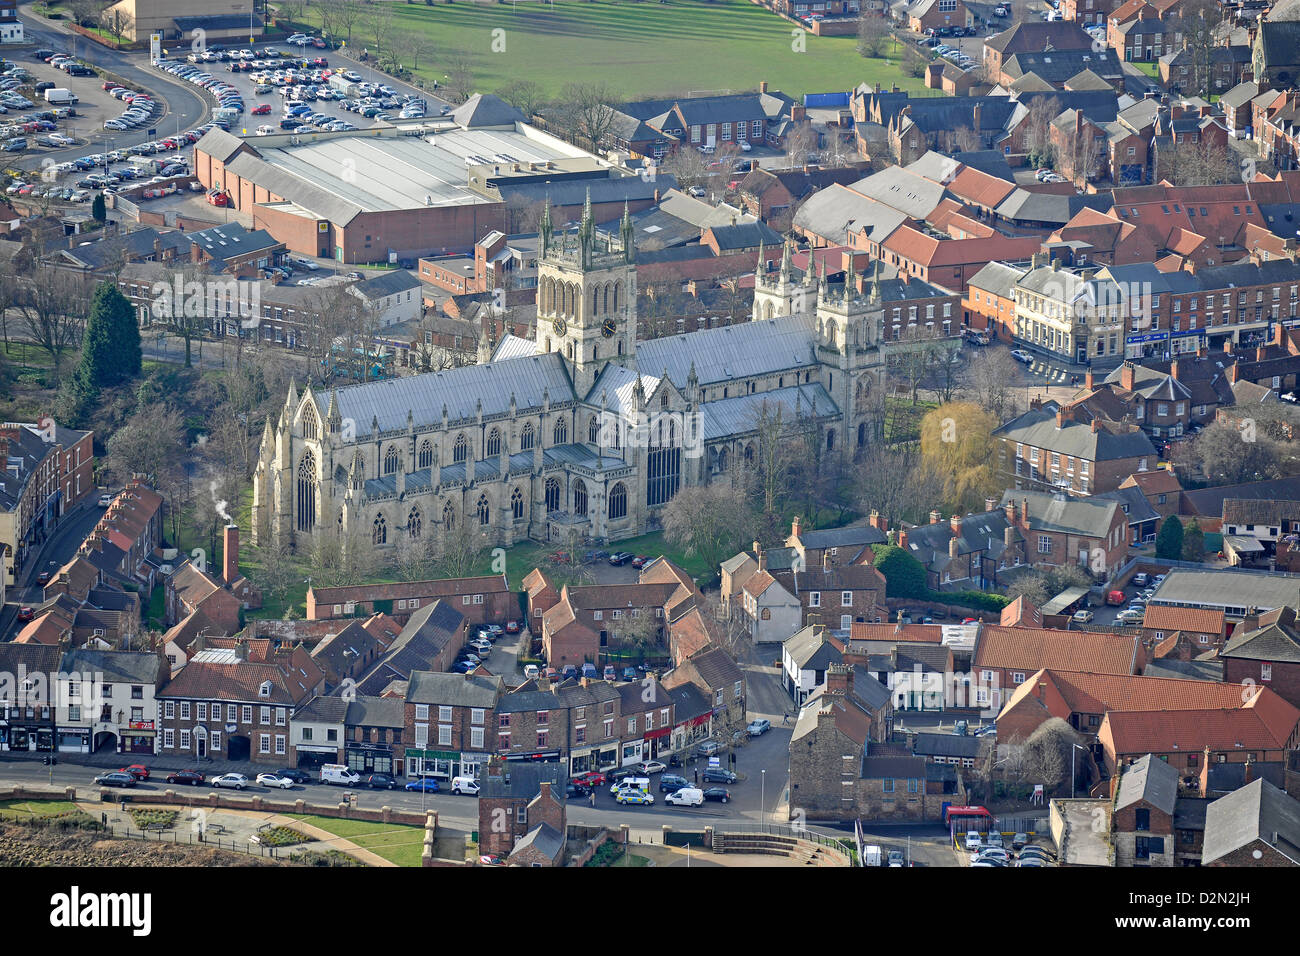 Aerial photograph of Selby Abbey and Surroundings - Stock Image